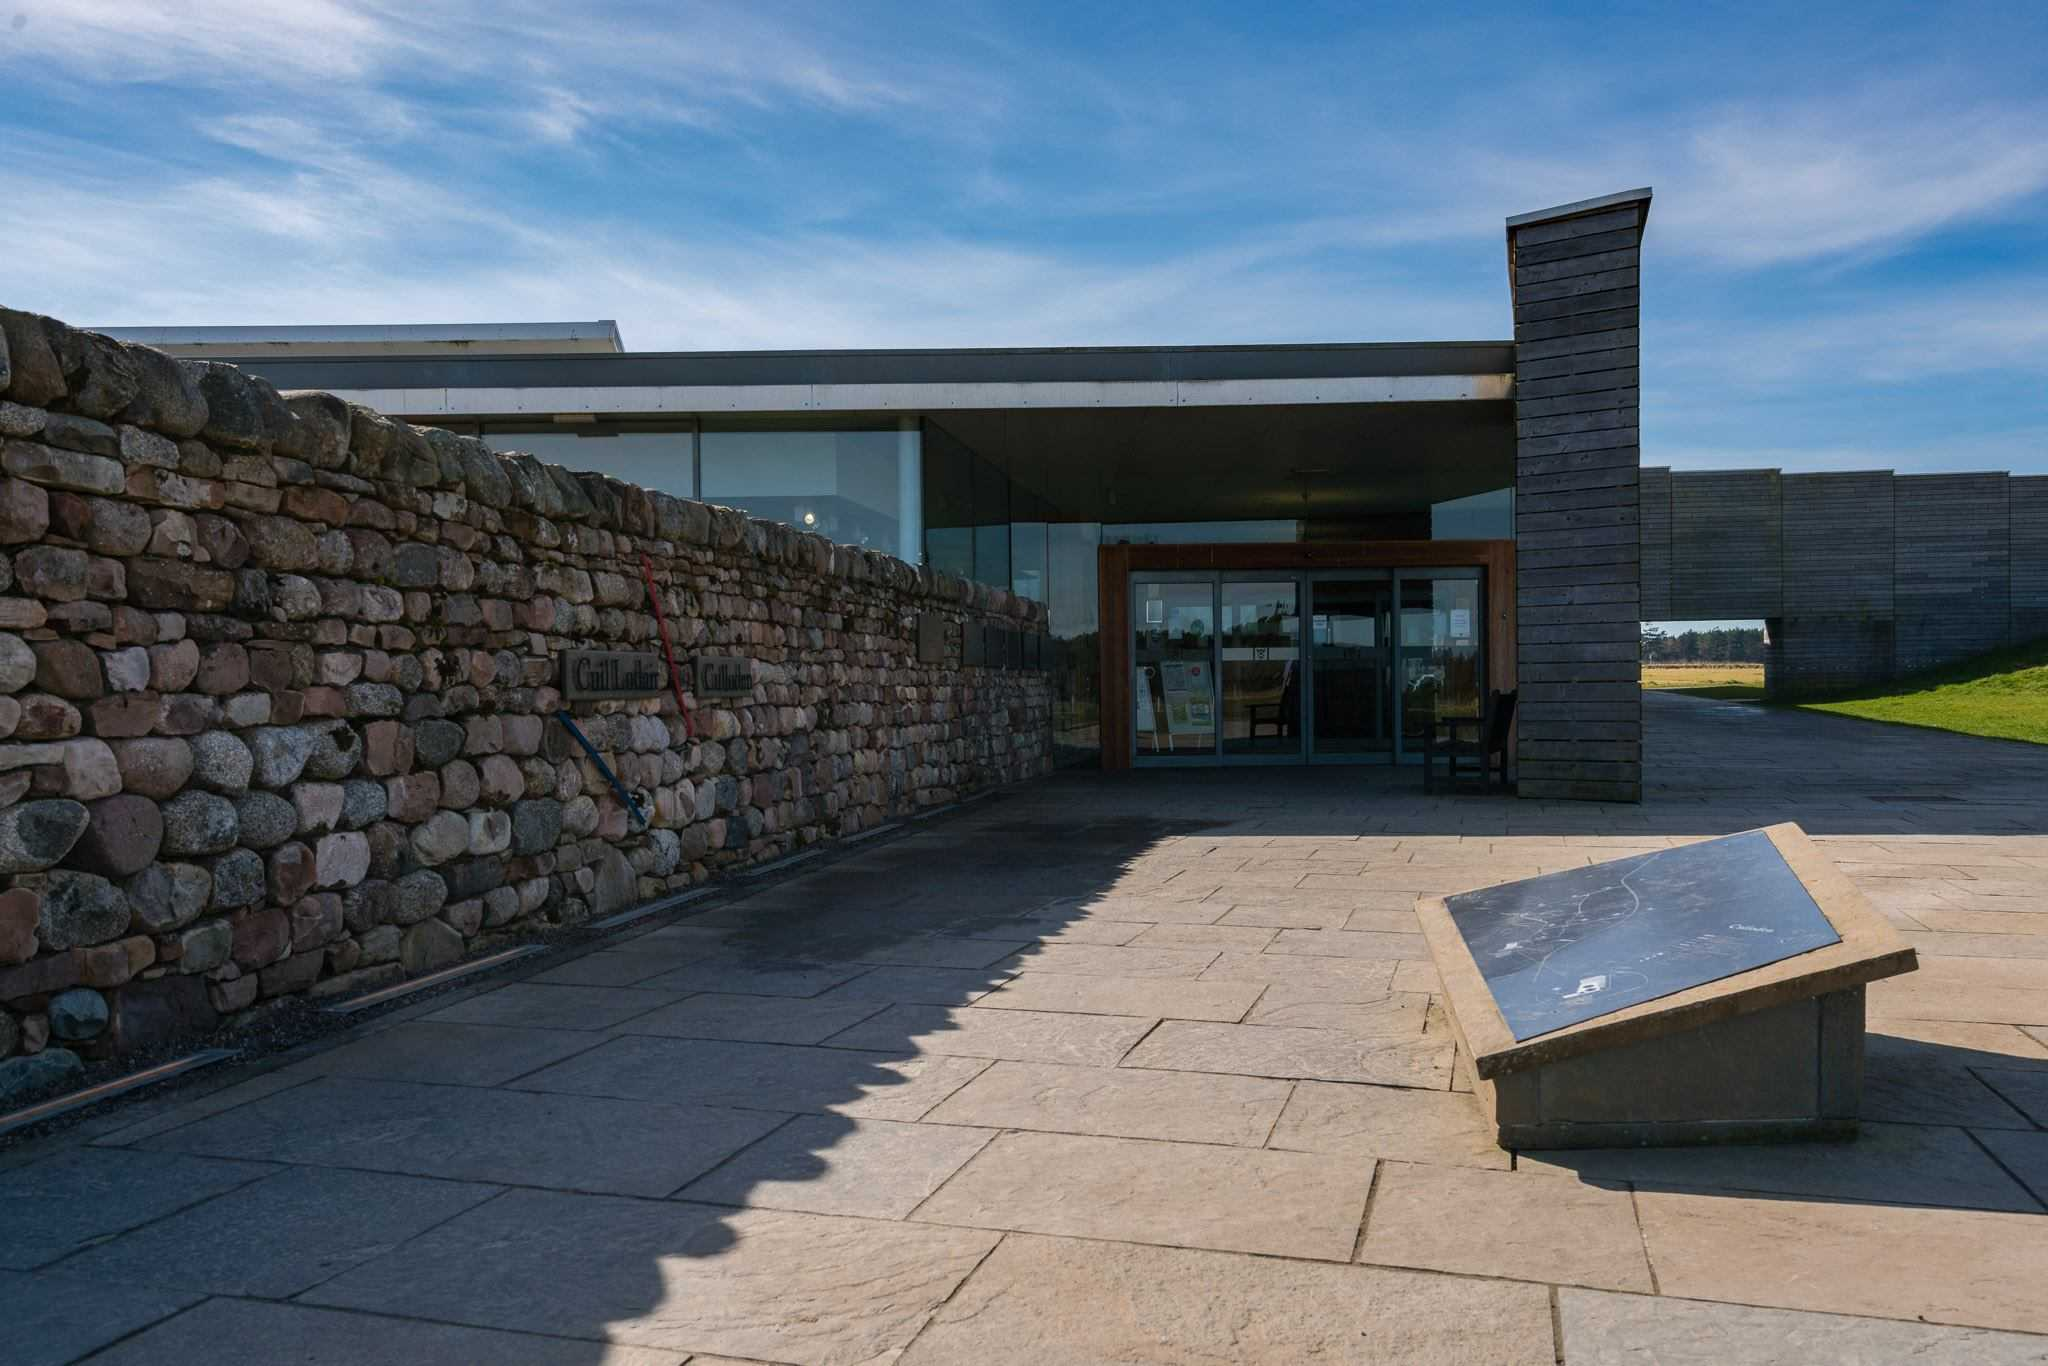 e Culloden Battlefield Visitors Center